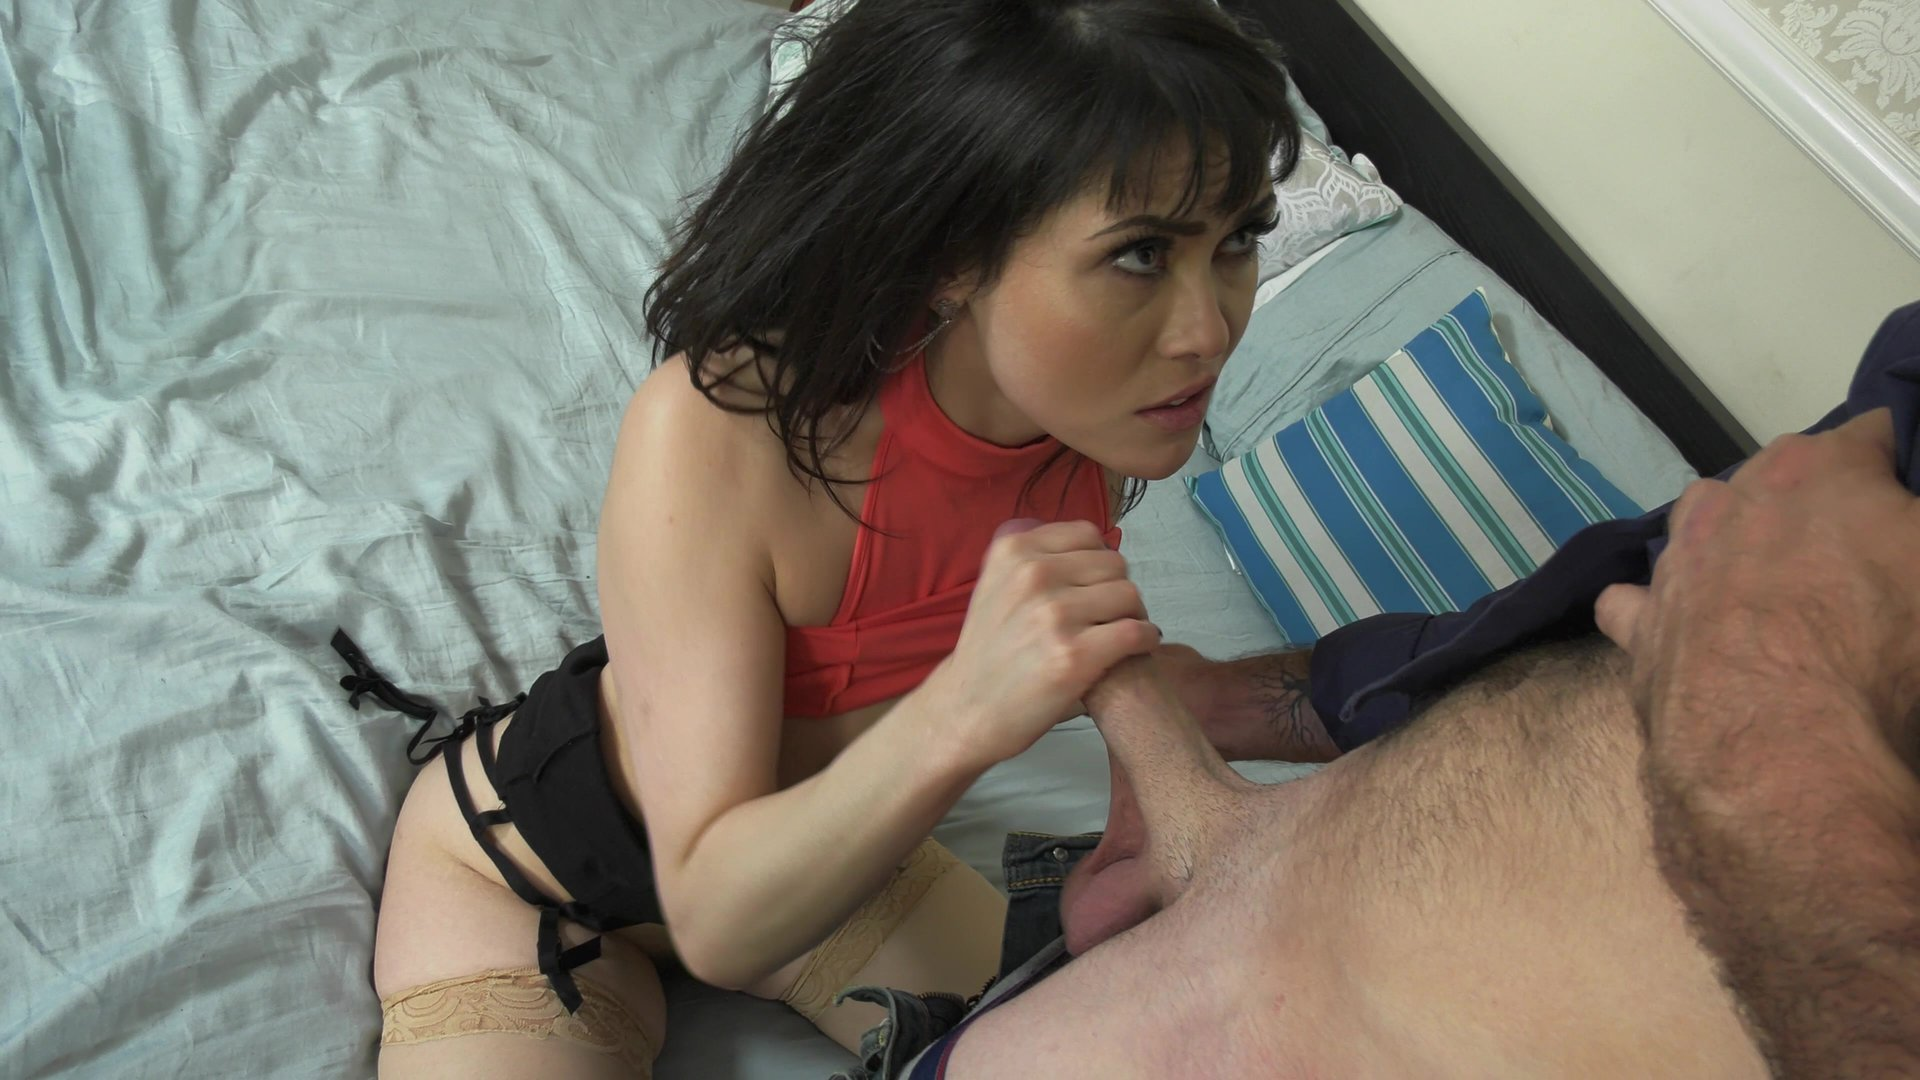 Squirting Streaming Videos 112